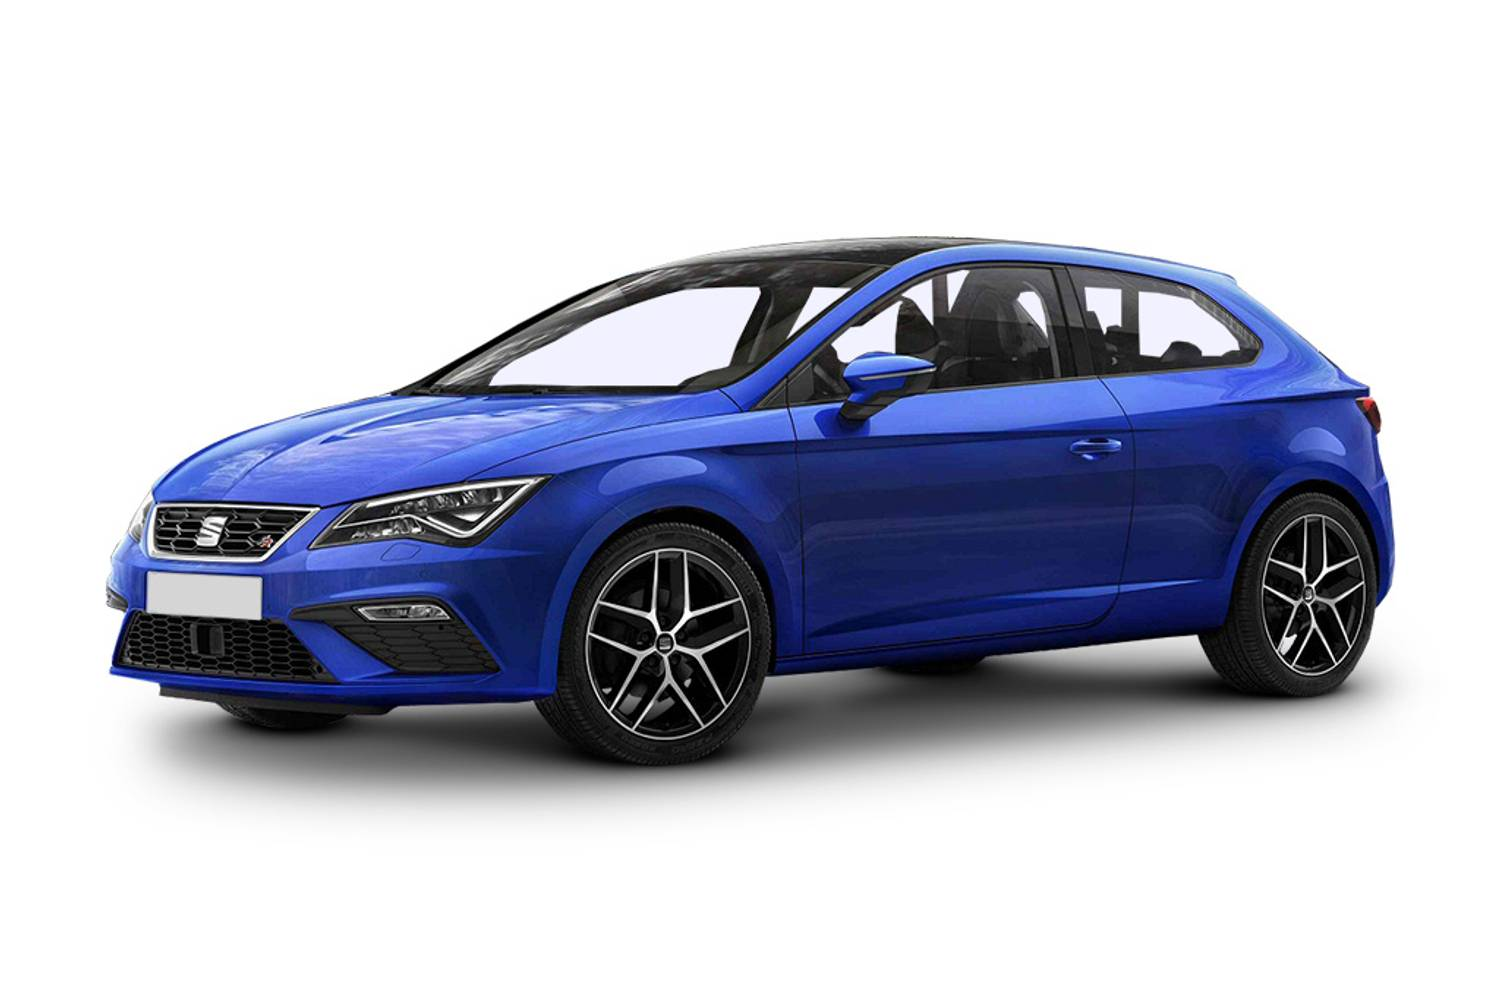 new seat leon sport coupe 1 8 tsi fr titanium technology 3 door dsg 2017 for sale. Black Bedroom Furniture Sets. Home Design Ideas